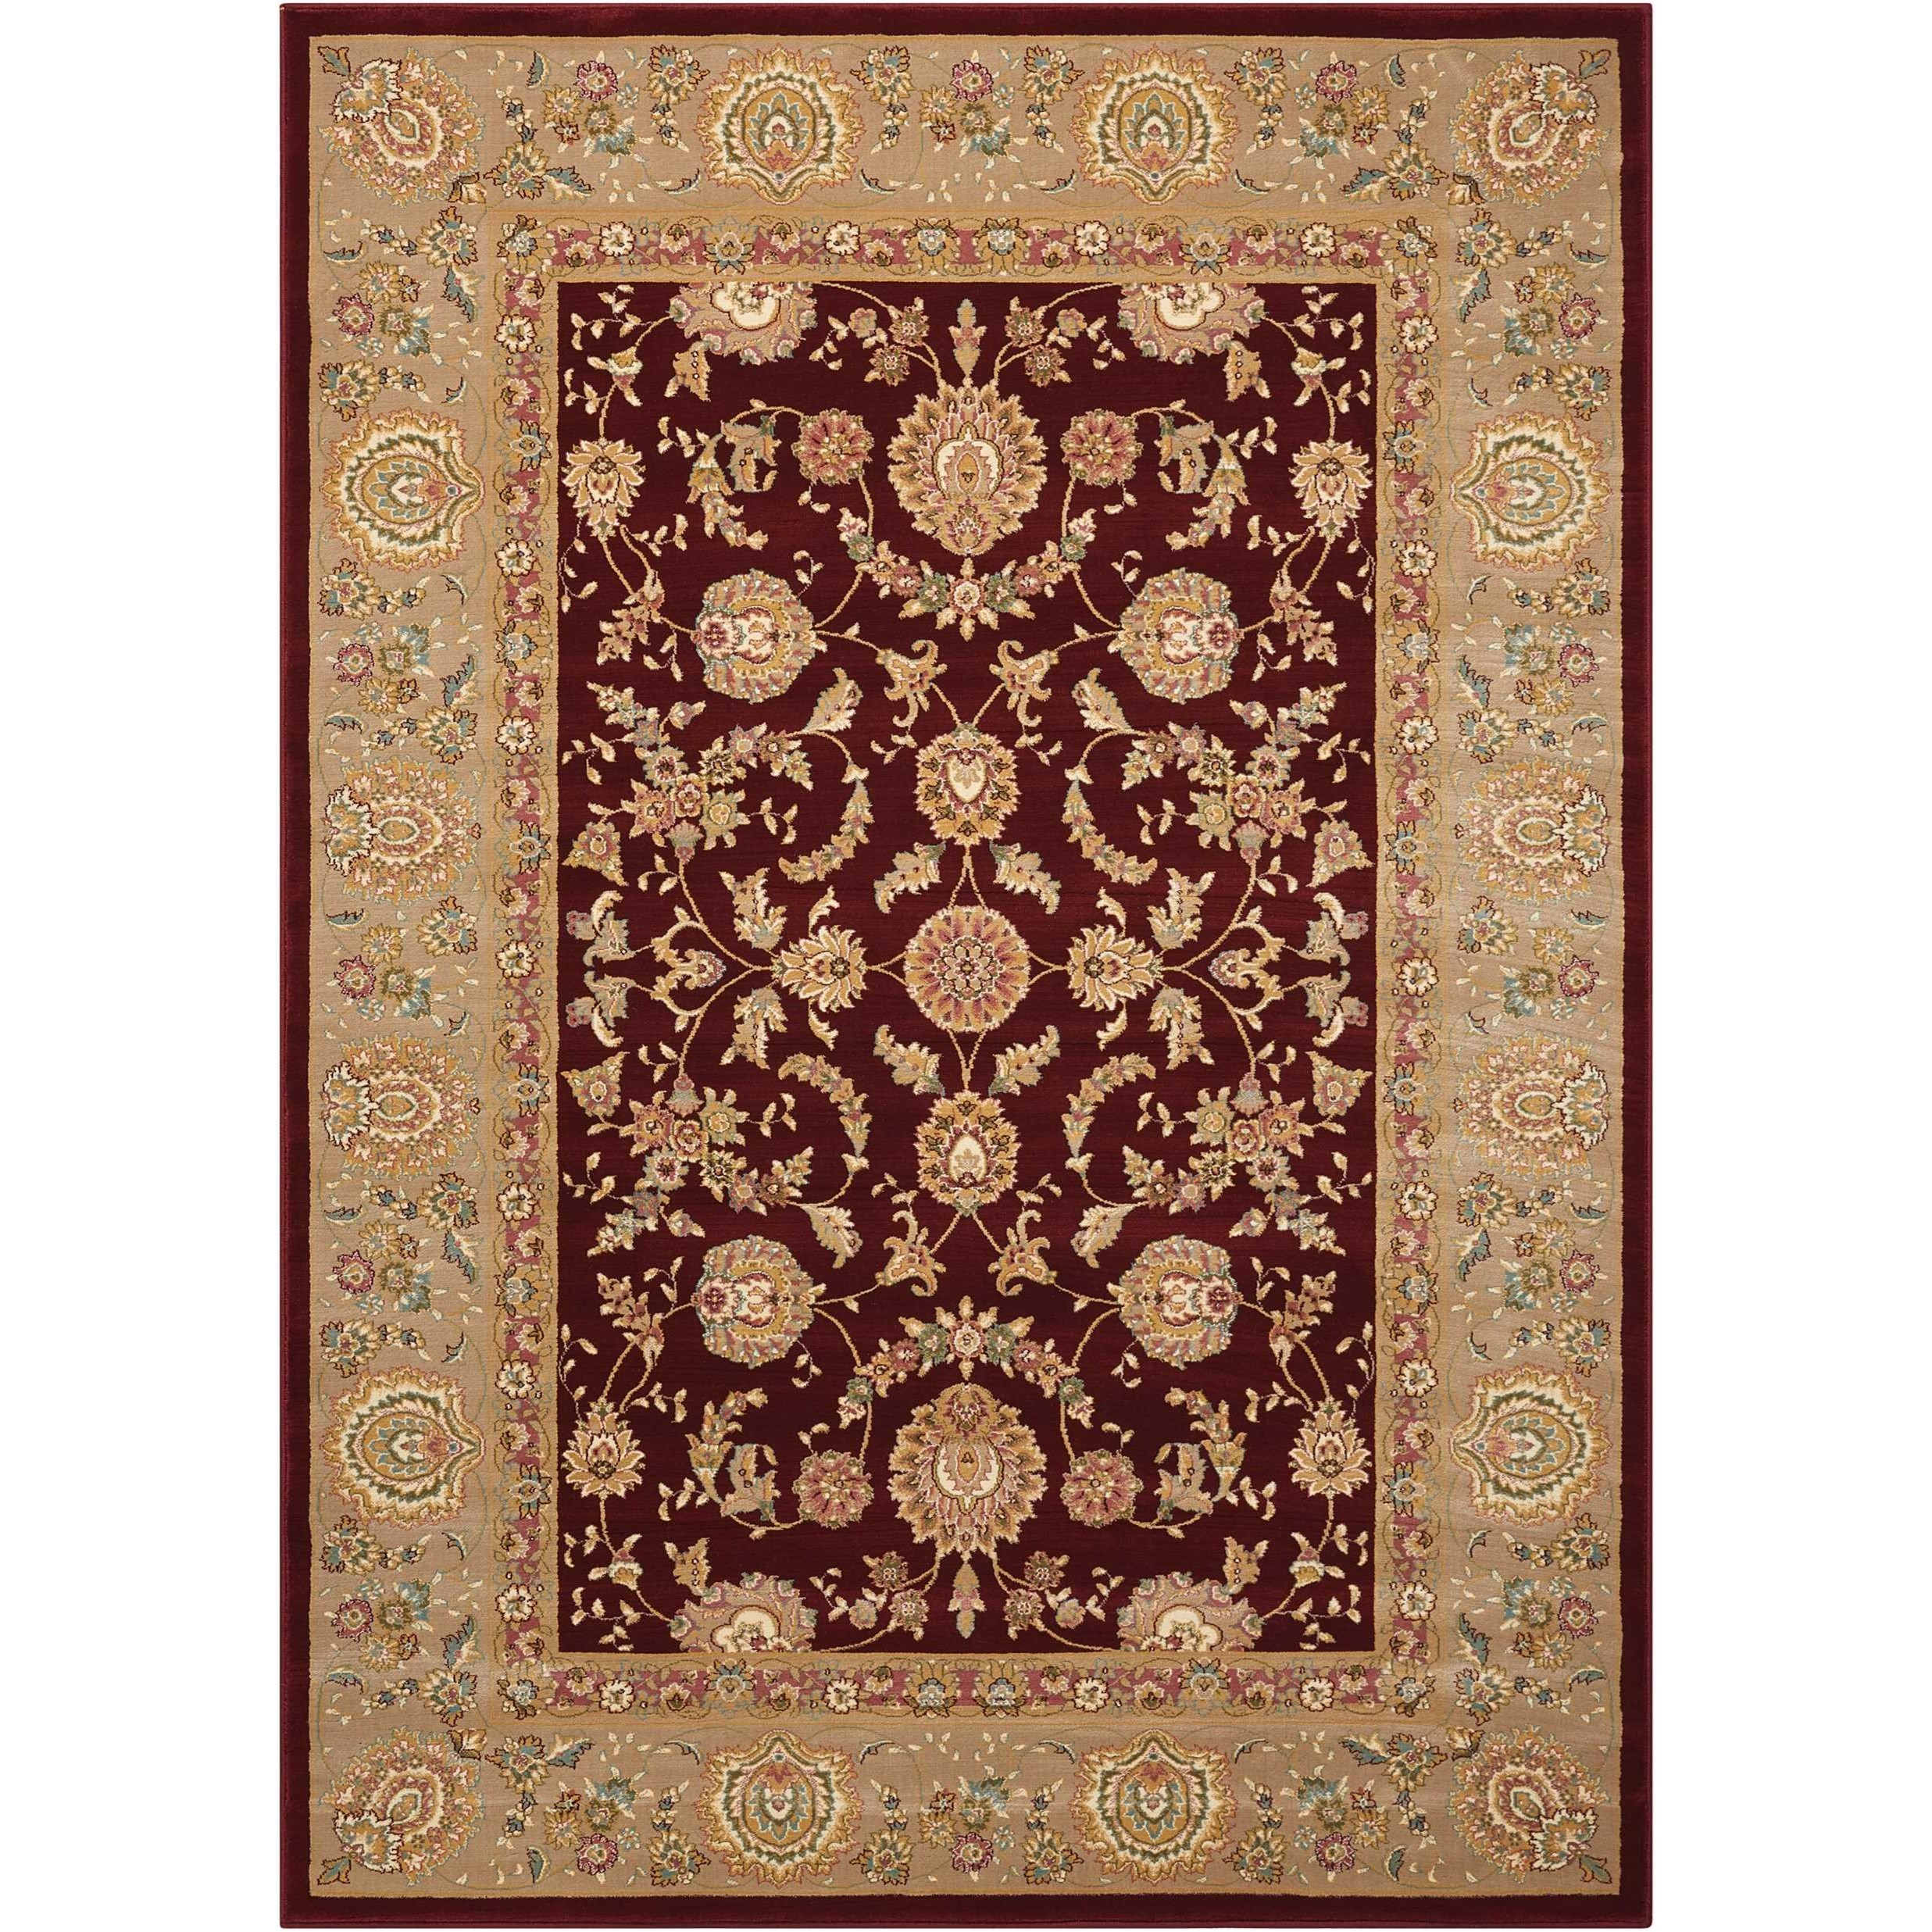 "Antiquities 3'9"" x 5'9"" Rug by kathy ireland Home by Nourison at Home Collections Furniture"